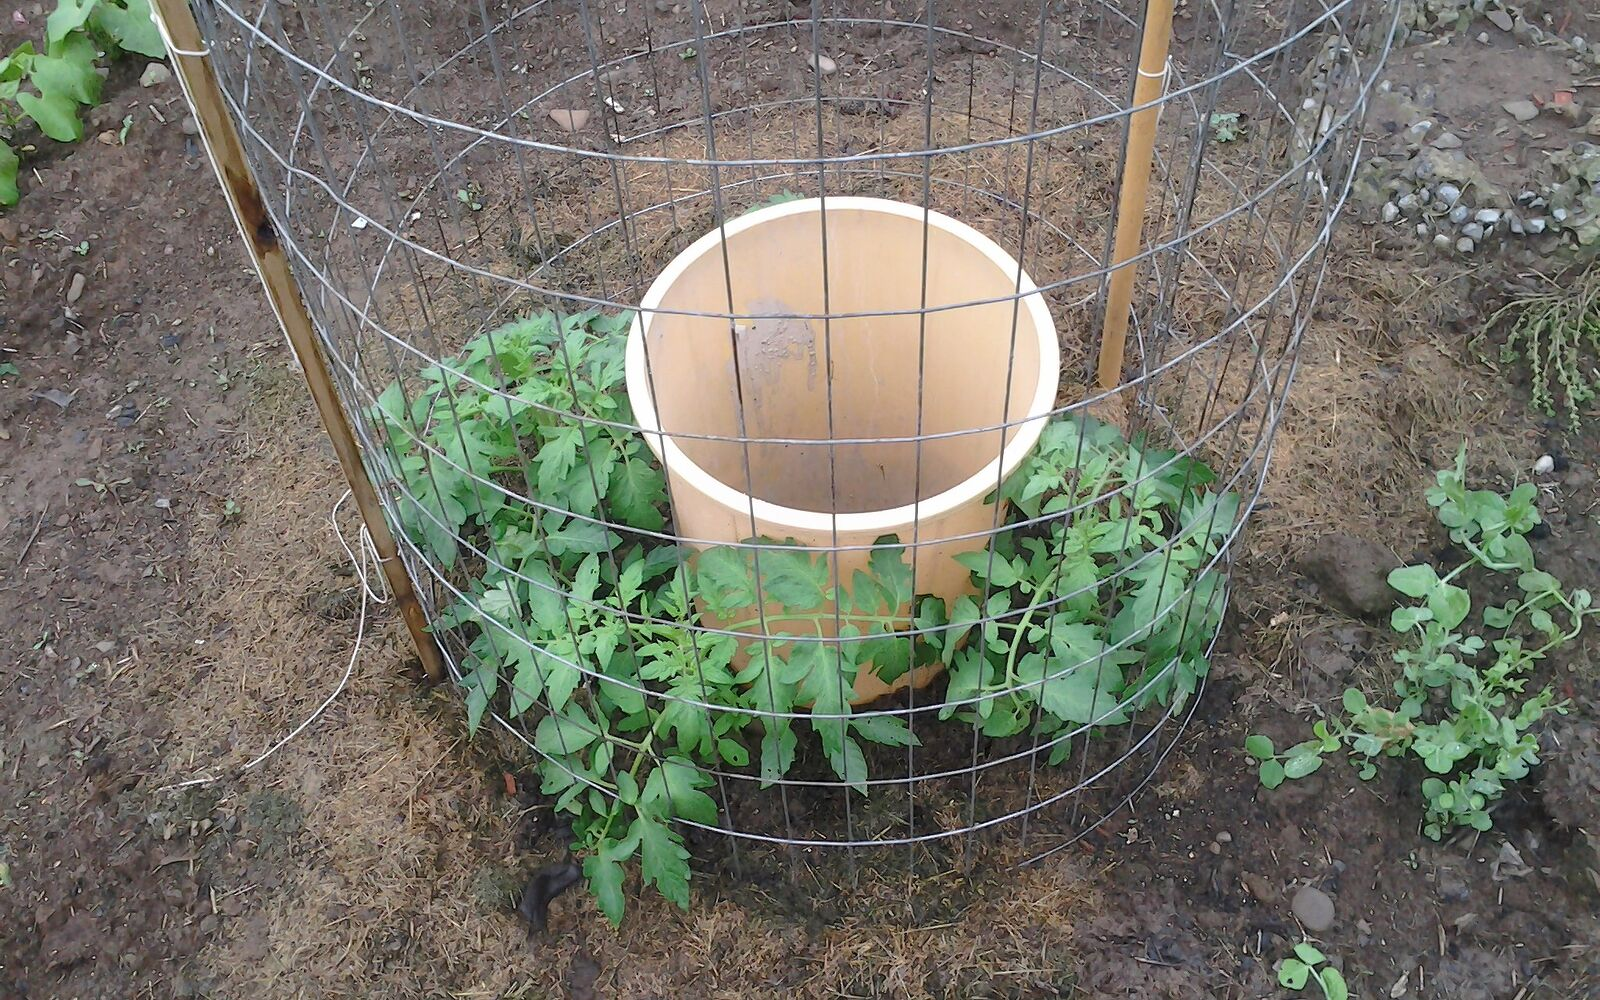 s the easiest ways to grow a bumper crop of tomatoes, Water them frequently at the roots